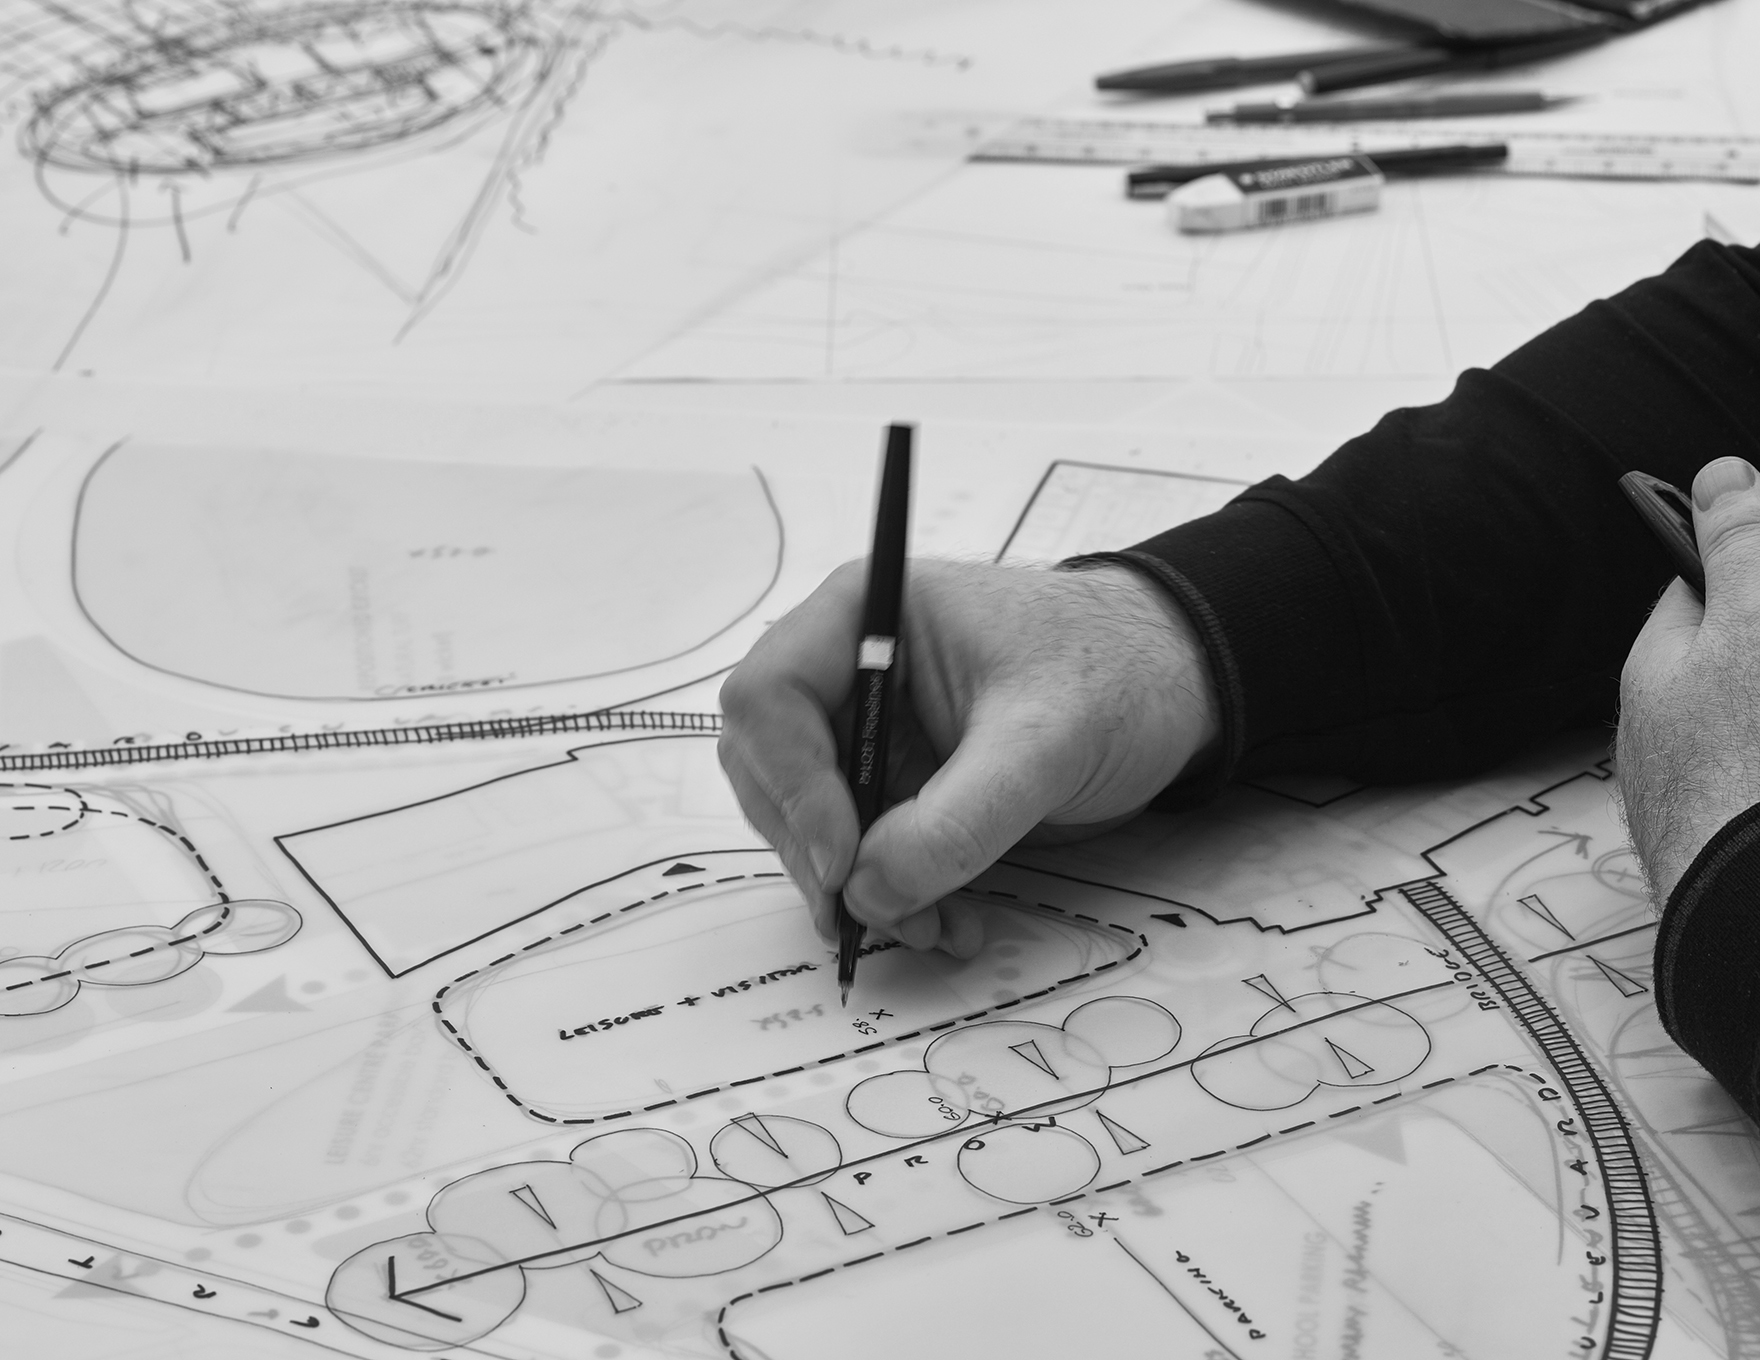 Inspirational Schools Design Architectural Hand Sketching Concepts L